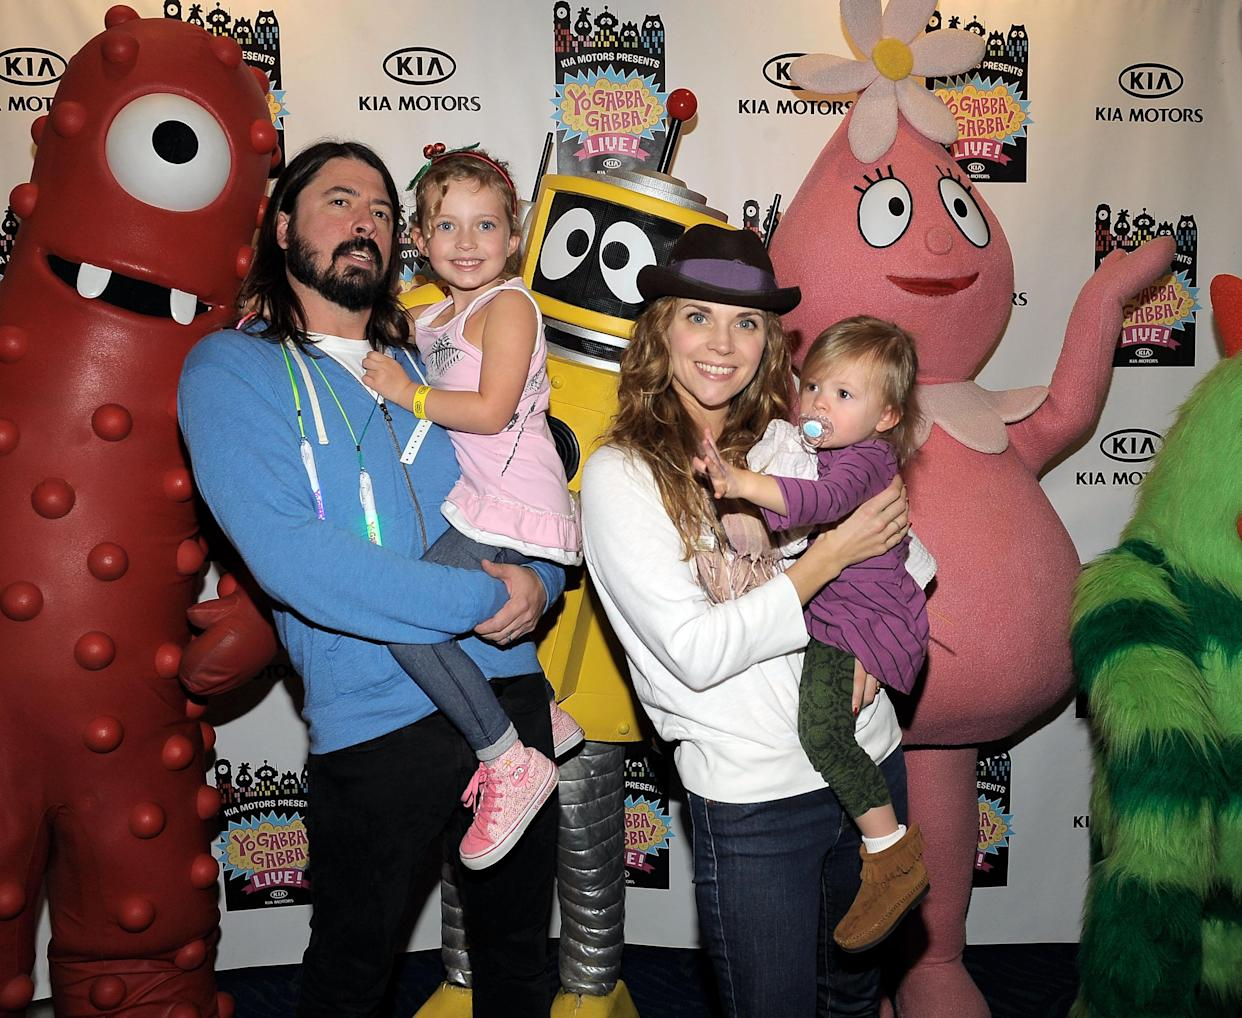 (L-R) Musician Dave Grohl, daughter Violet, wife Jordyn Blum and daughter Harper attend YO GABBA GABBA! @ KIA PRESENTS YO GABBA GABBA! LIVE! THERE'S A PARTY IN MY CITY produced by S2BN Entertainment in association with The Magic Store and W!LDBRAIN Entertainment at Nokia L.A. LIVE on November 27, 2010 in Los Angeles, California.